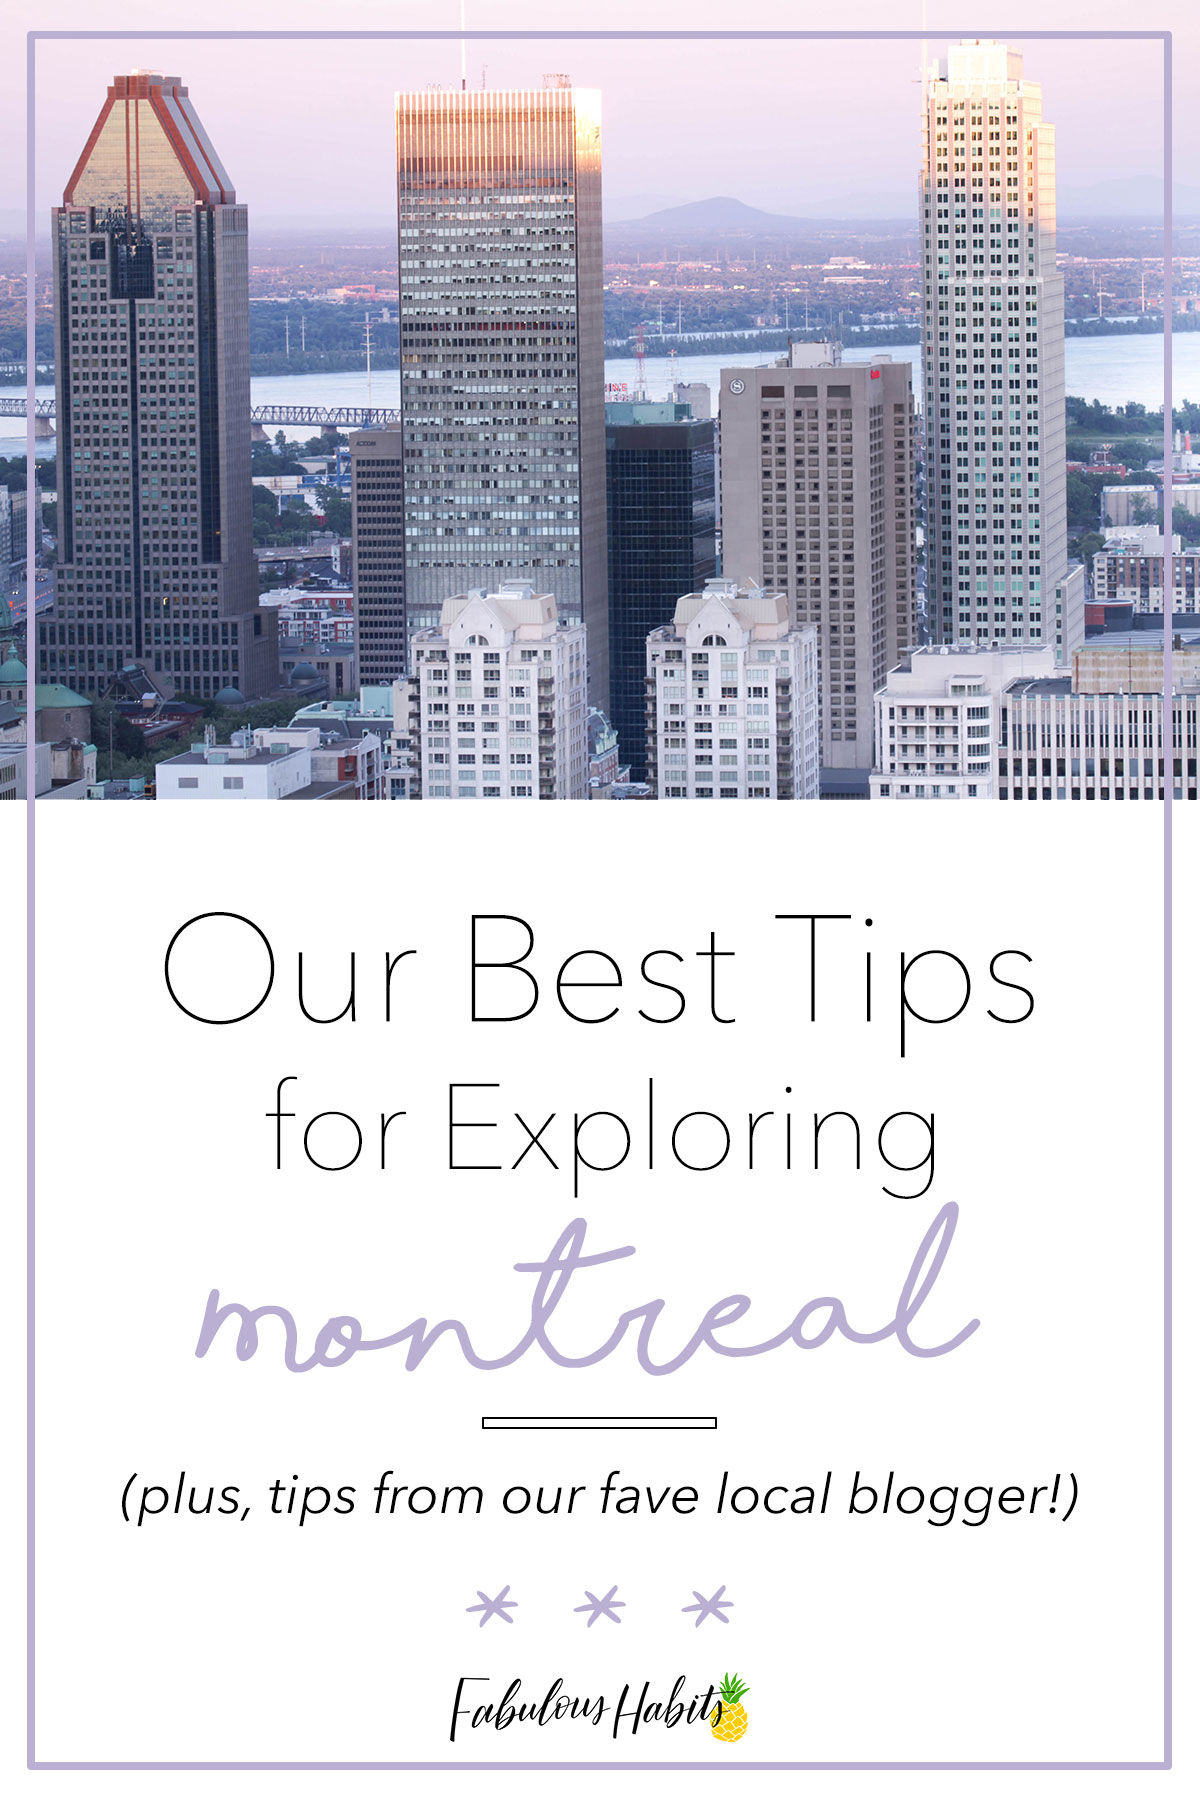 Partnered up with my fave mama blogger and we're sharing our best tips on exploring Montreal - even with the kiddos! #montreal